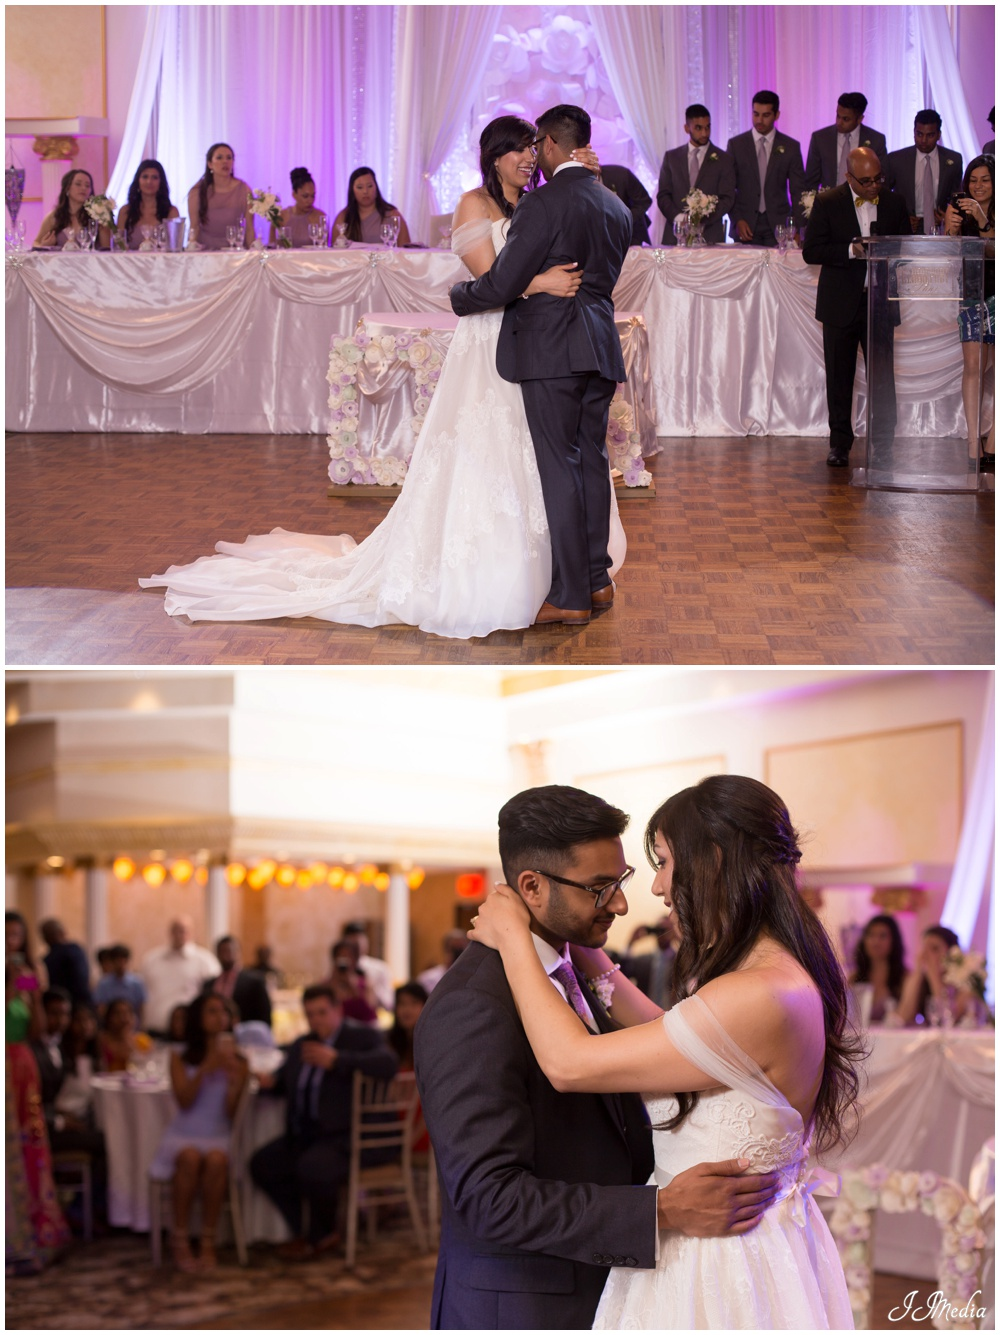 Claireport-Place-Banquet-Wedding-Photography-160